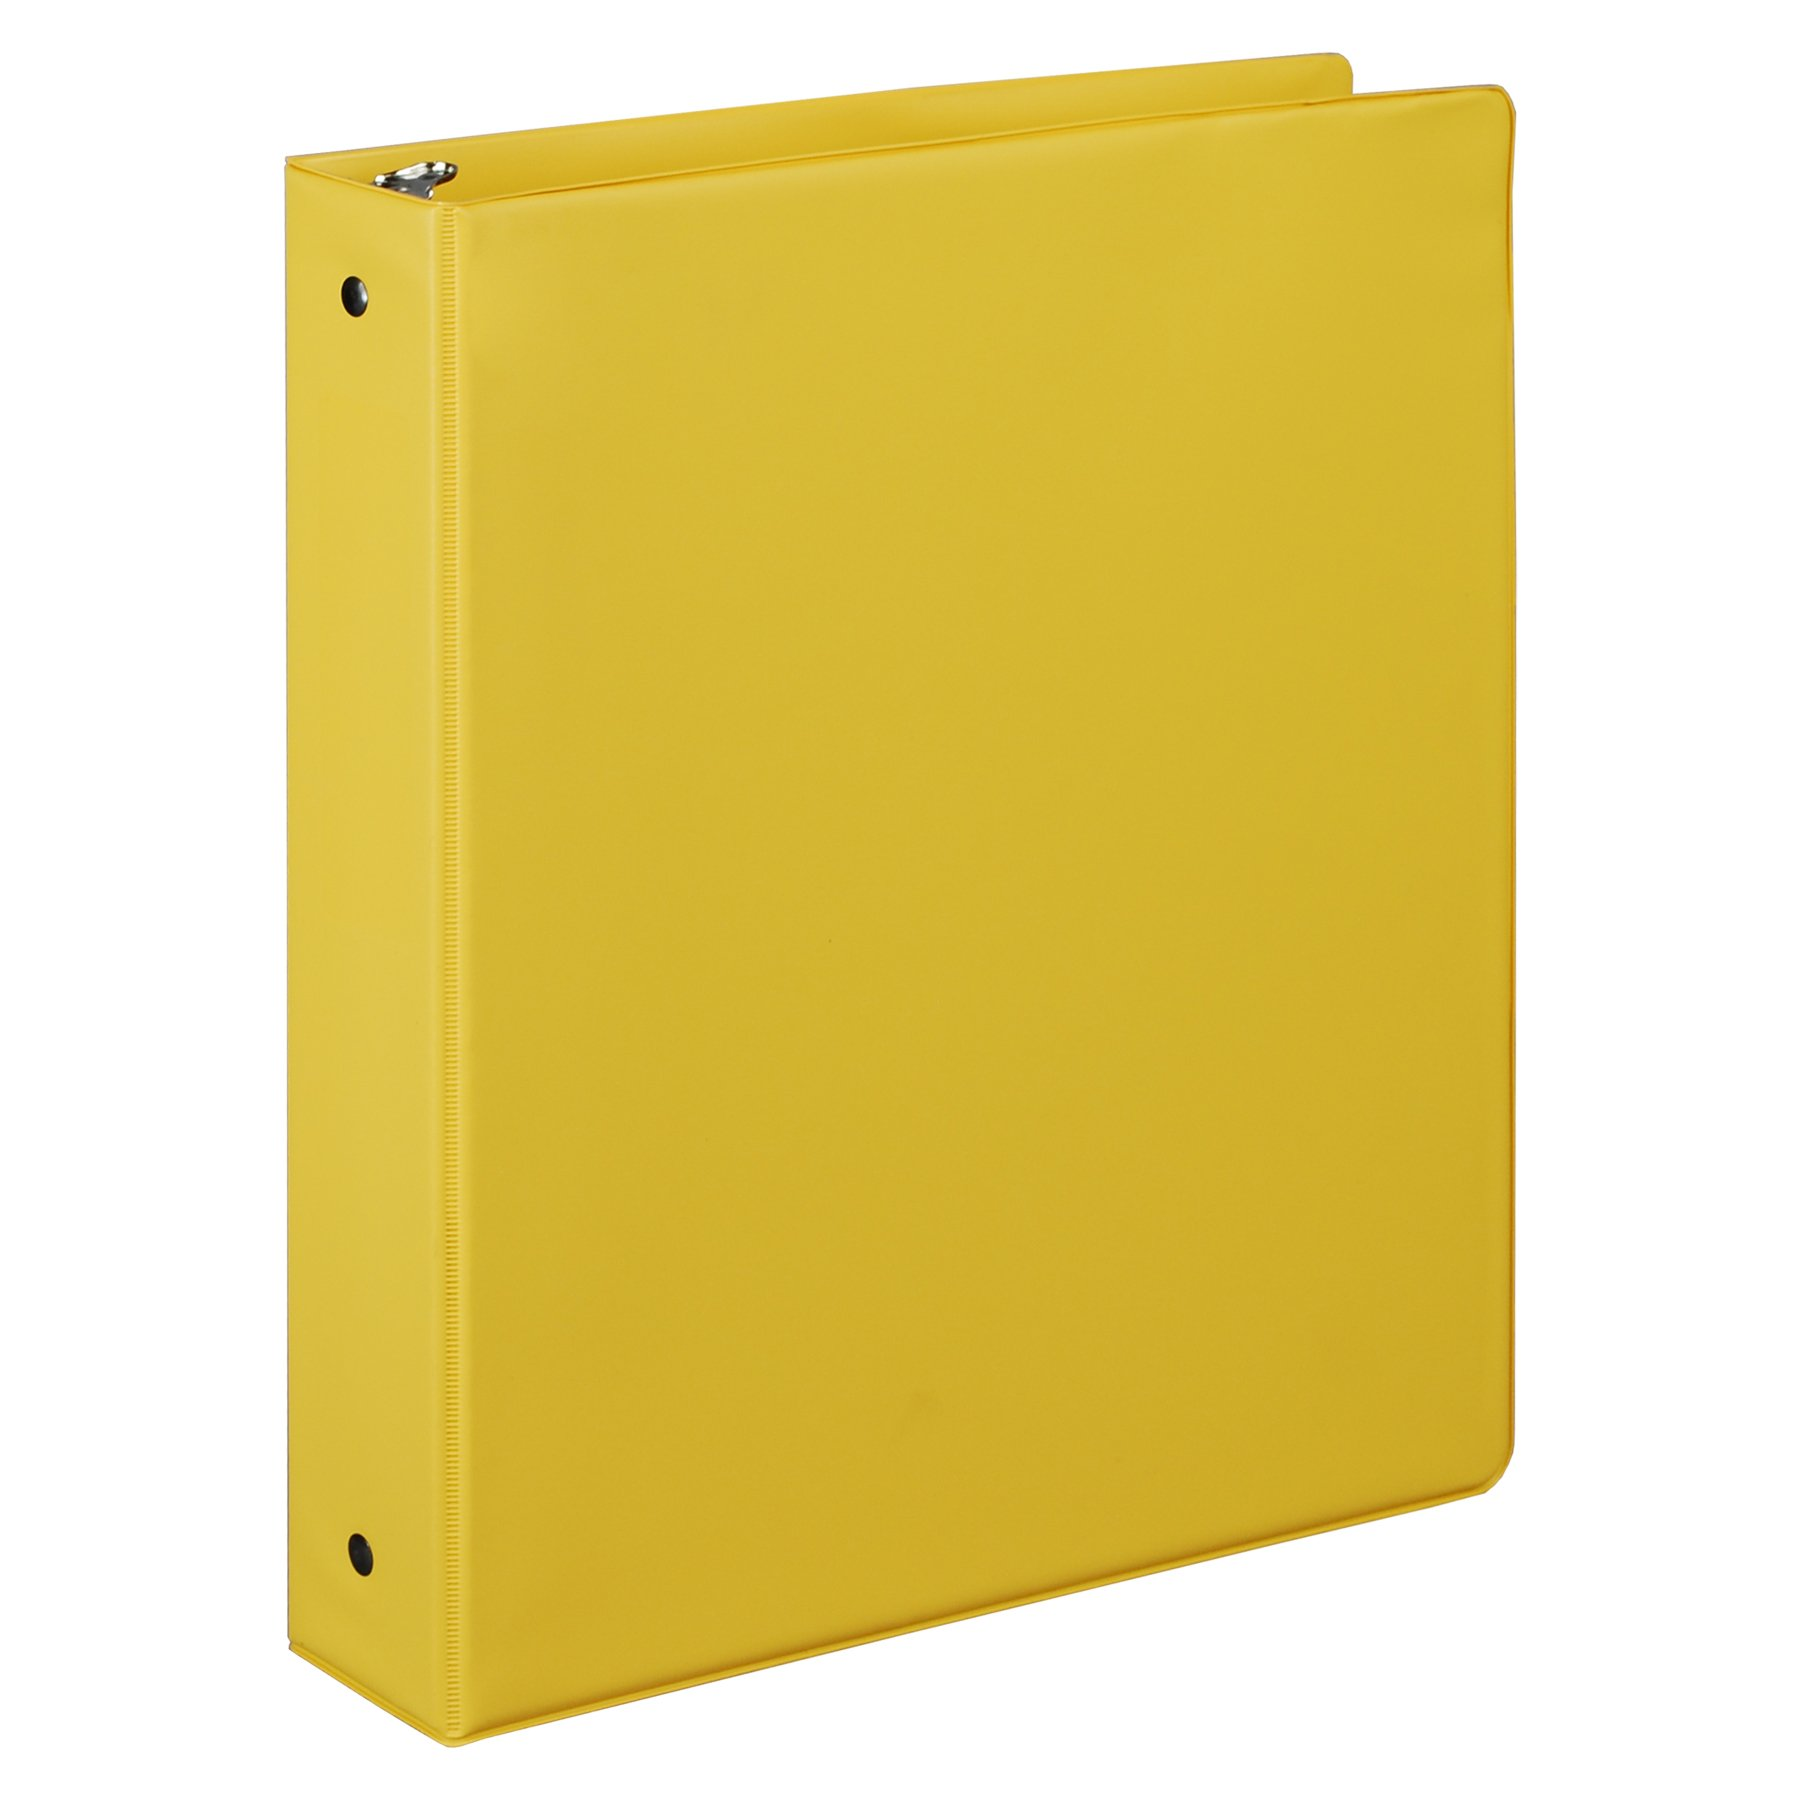 Samsill 1.5 Inch Value Document Storage 3 Ring Binder, Round Ring, 11 x 8.5 Inches, Yellow (11506)